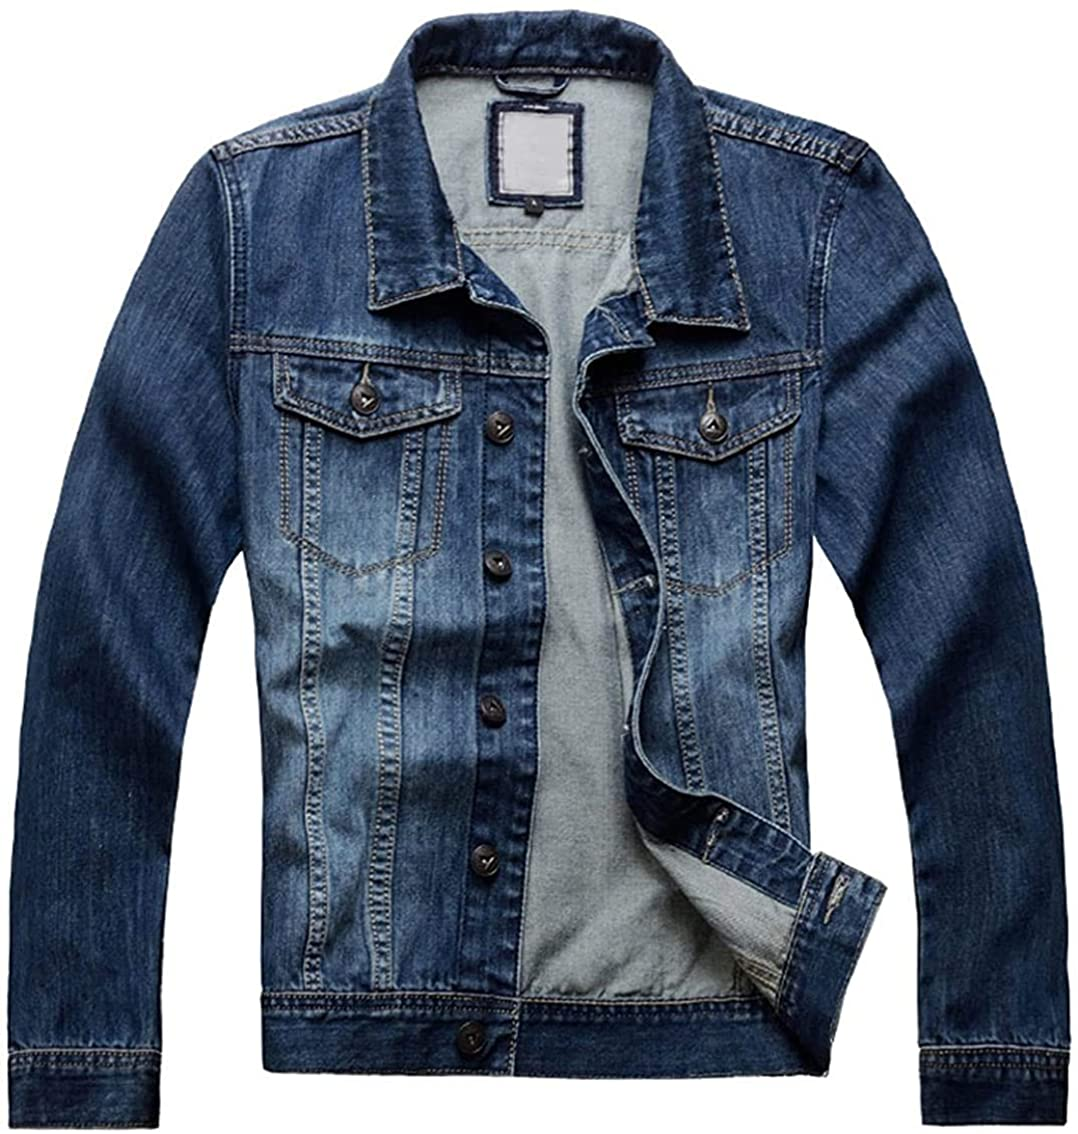 Men's Classic Collared Button Front Rugged Wear Unlined Denim Jacket